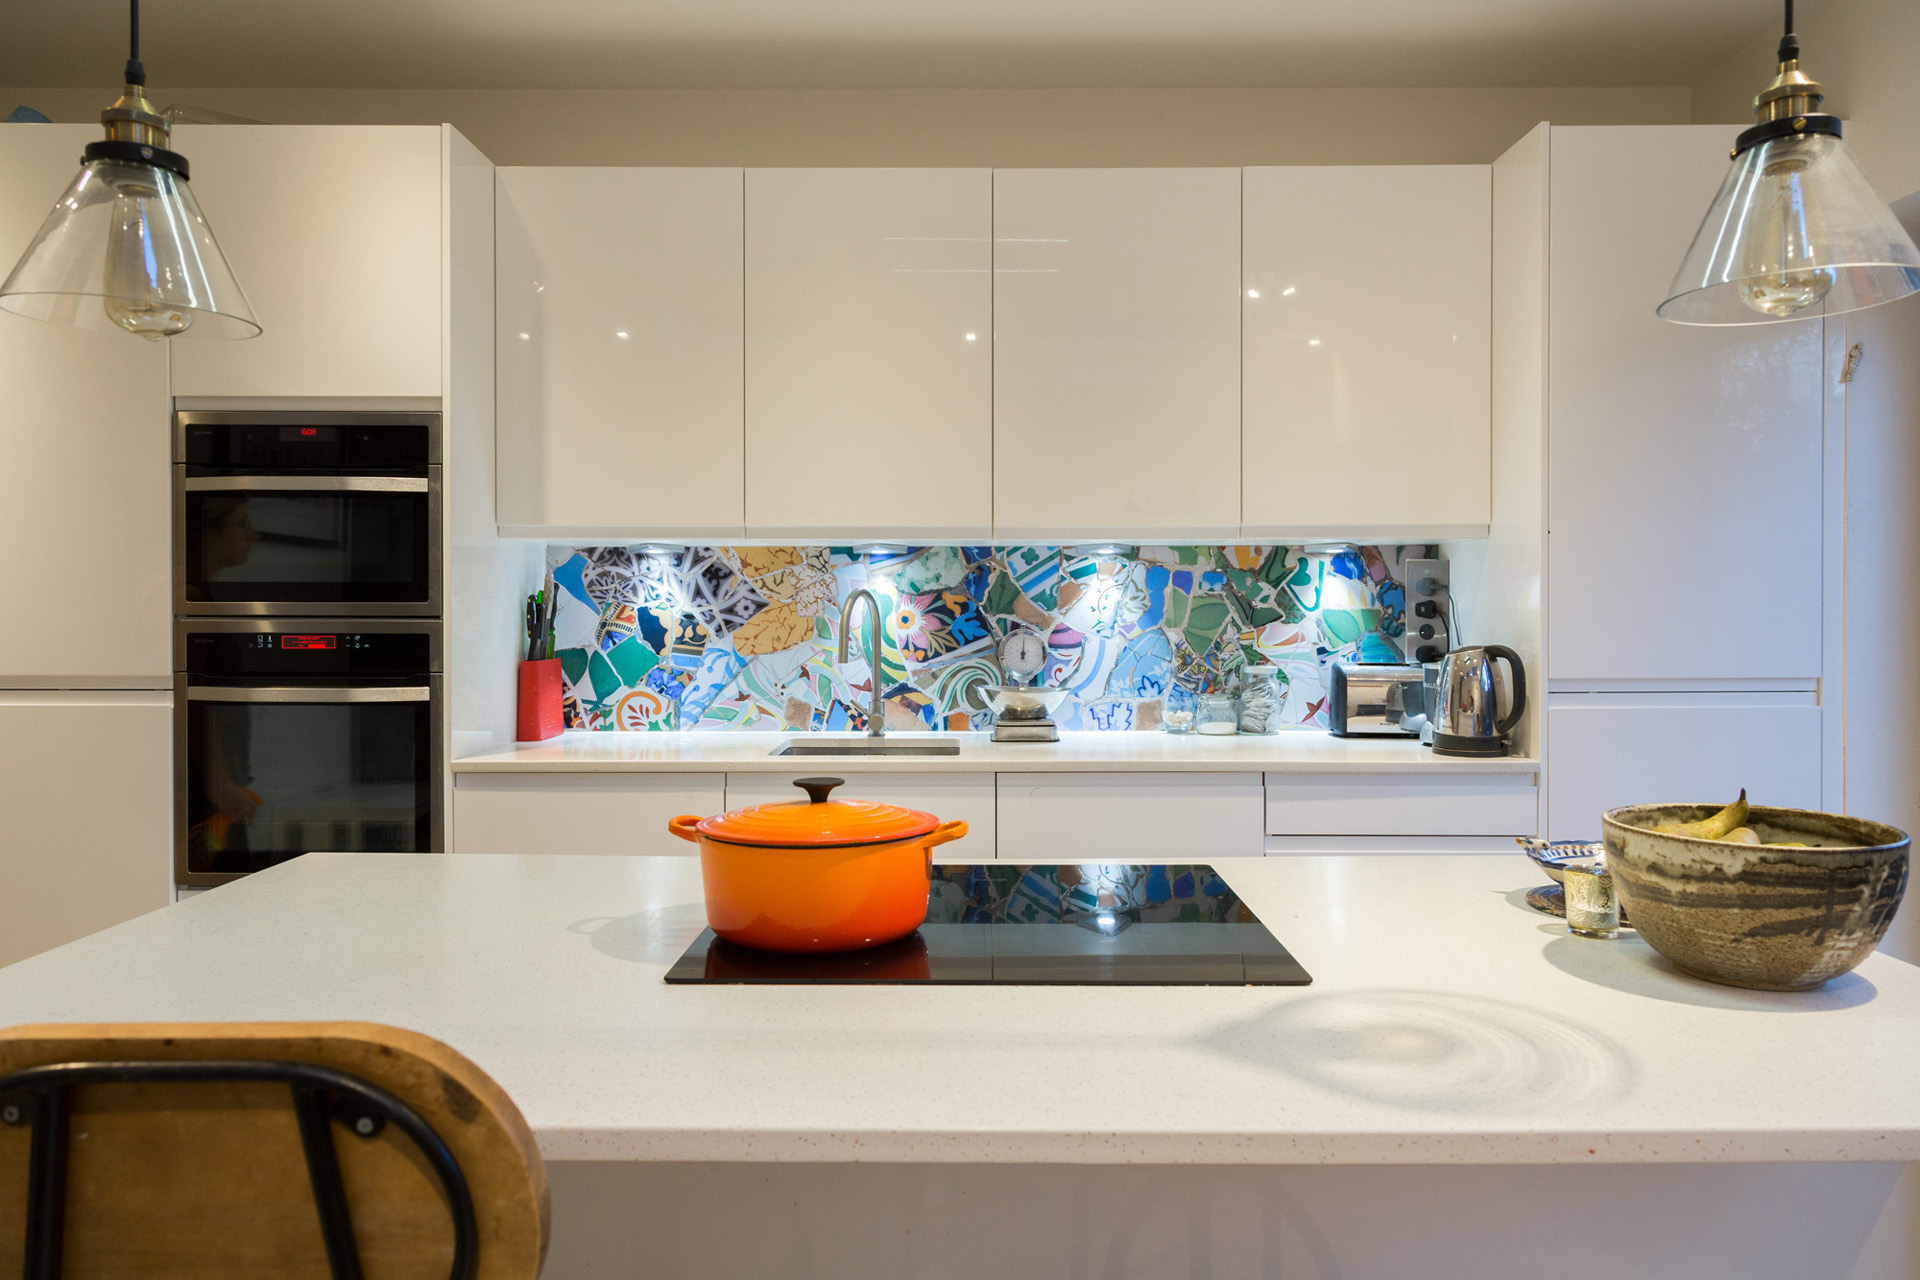 Home & Kitchen Extension Projects in London | Simply Extend